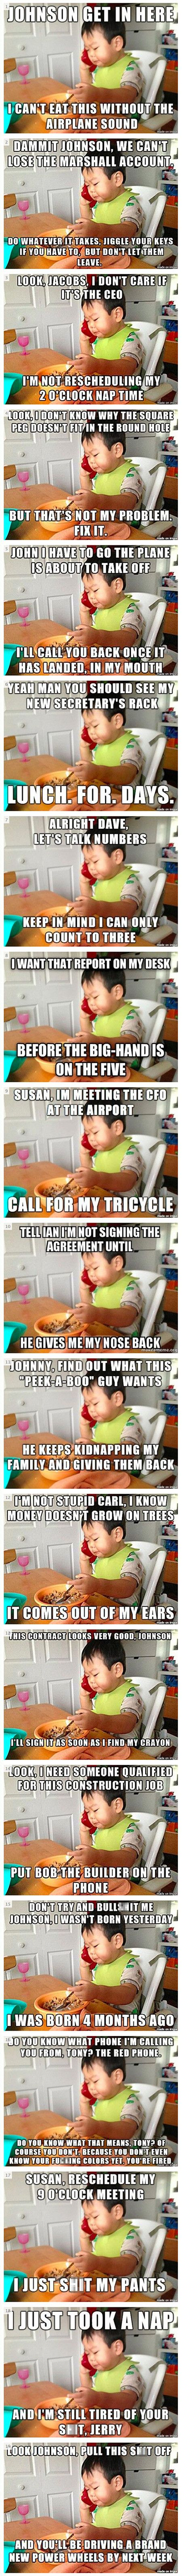 Business Baby is an advice animal image macro series featuring a photograph of a toddler talking on a toy phone with captions depicting the child as an enterprising business executive.